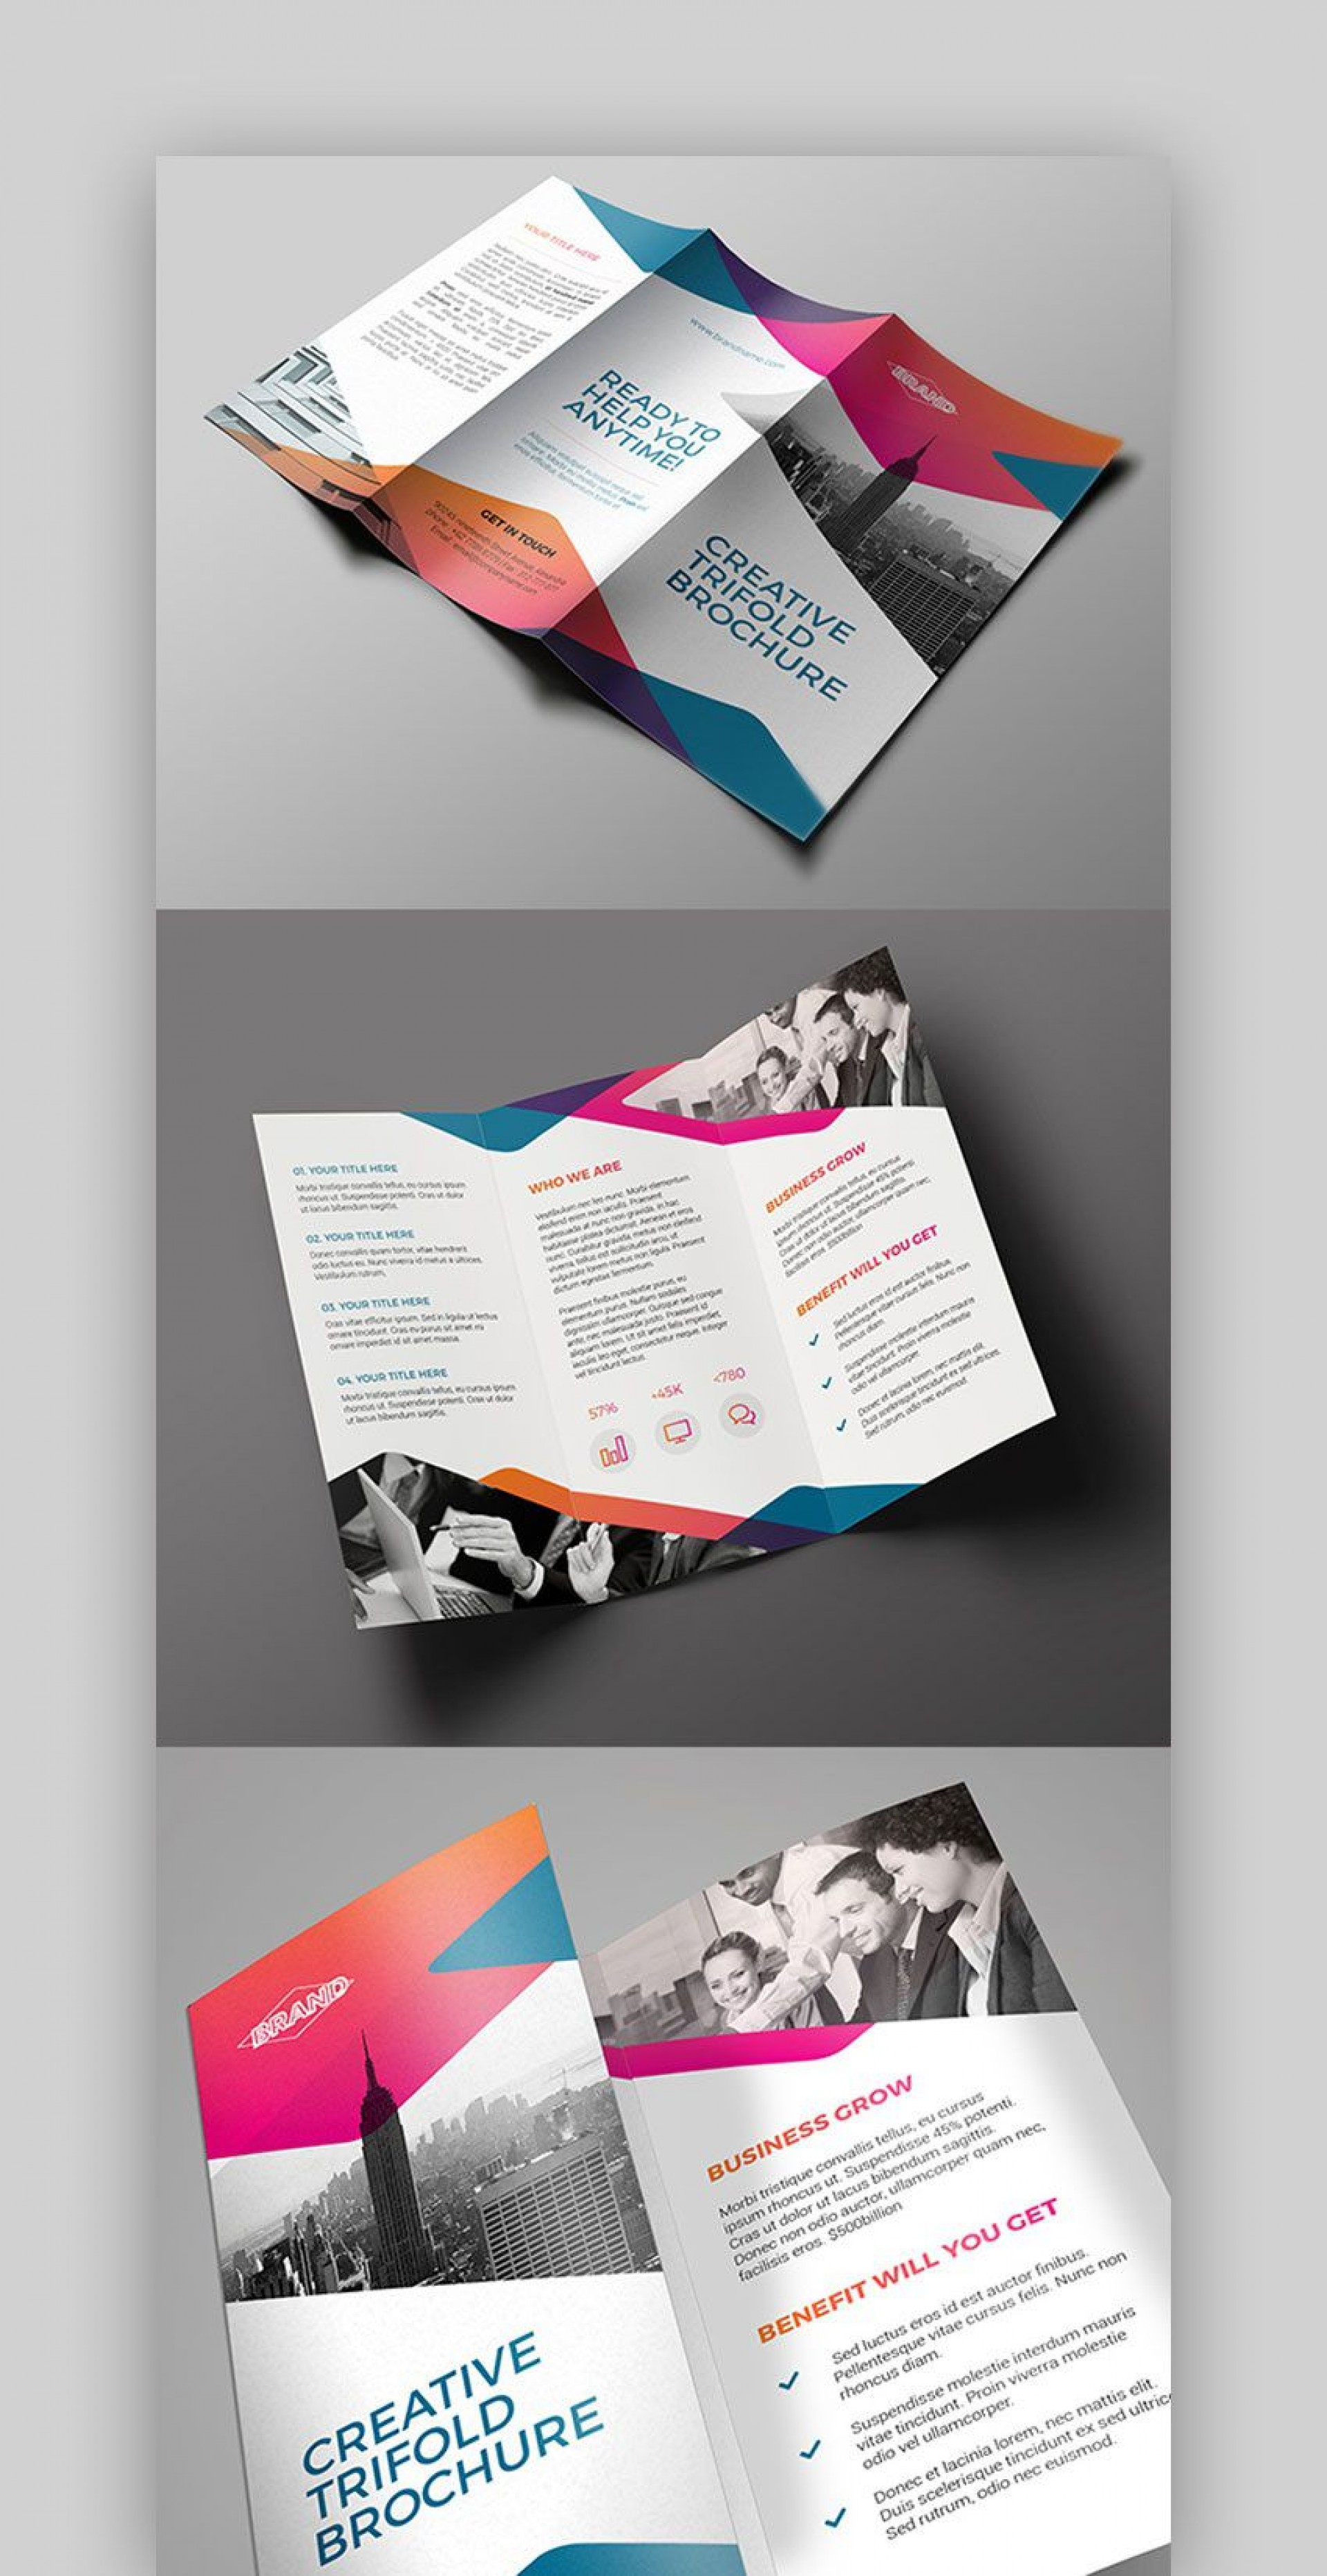 008 Amazing Indesign Trifold Brochure Template Picture  Templates Adobe Tri Fold Bi Free Download1920